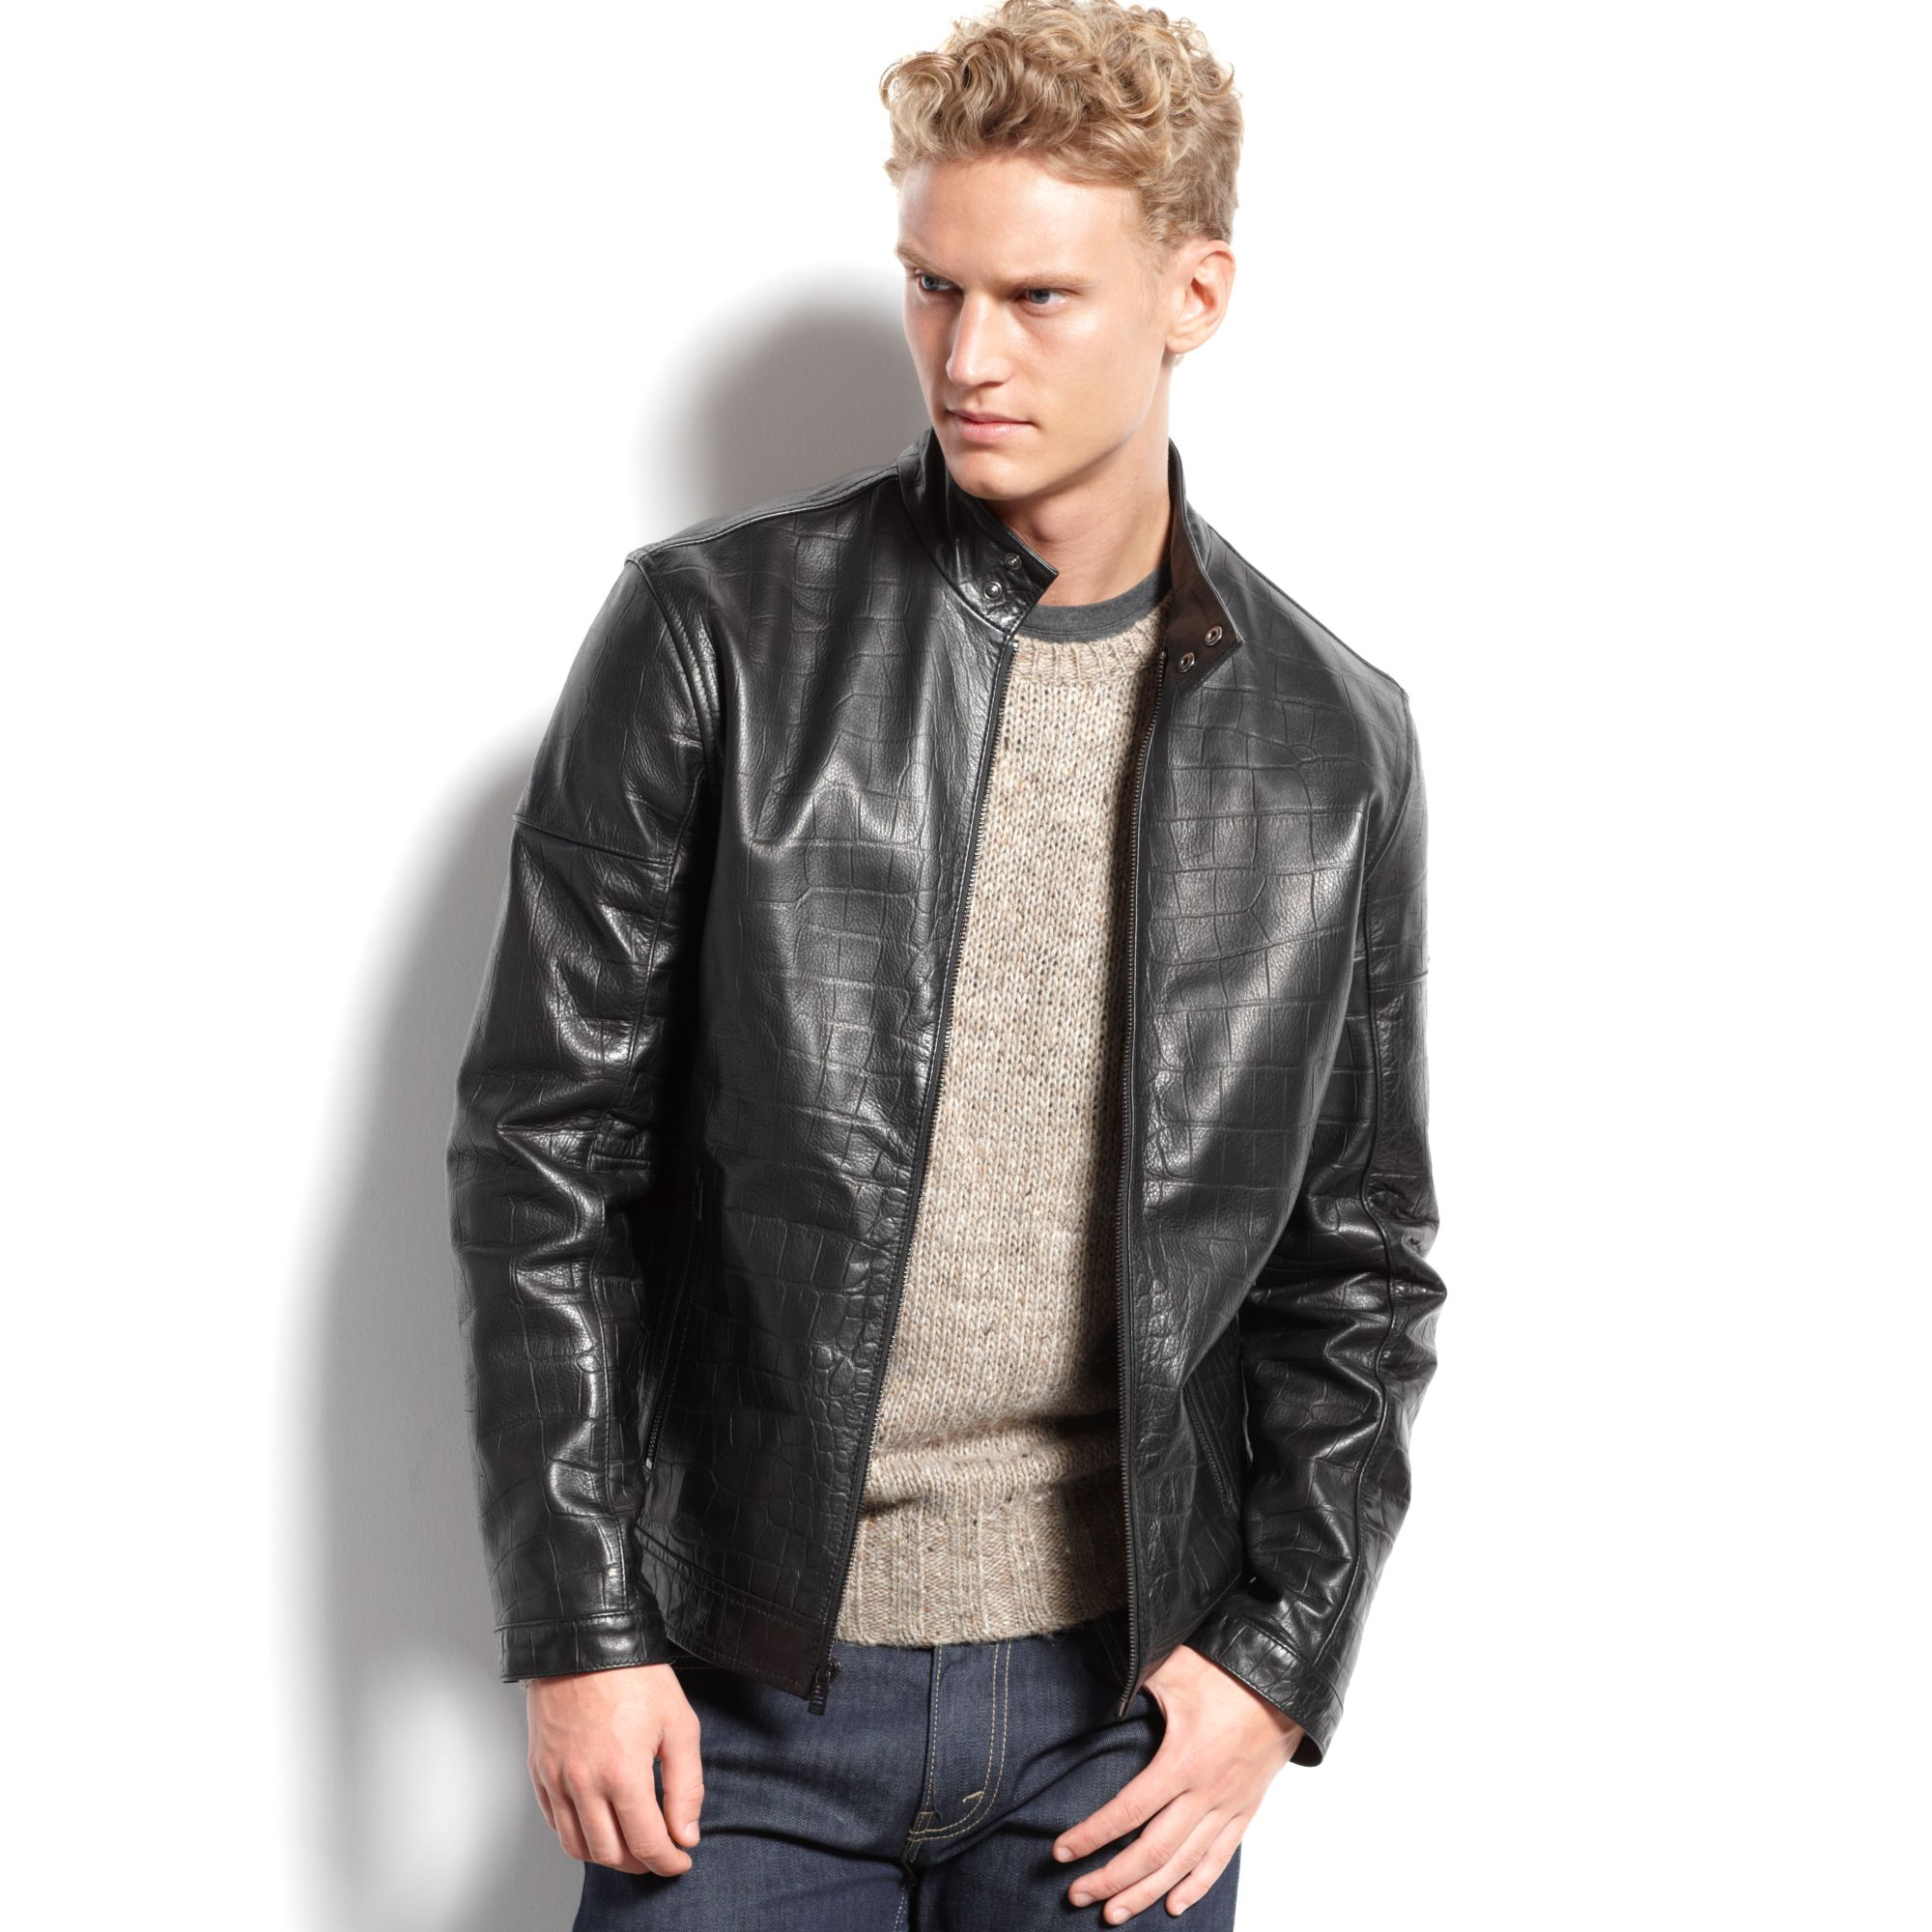 dd72de3e35b3 Lyst - Calvin Klein Mens Leather Moto Jacket in Black for Men